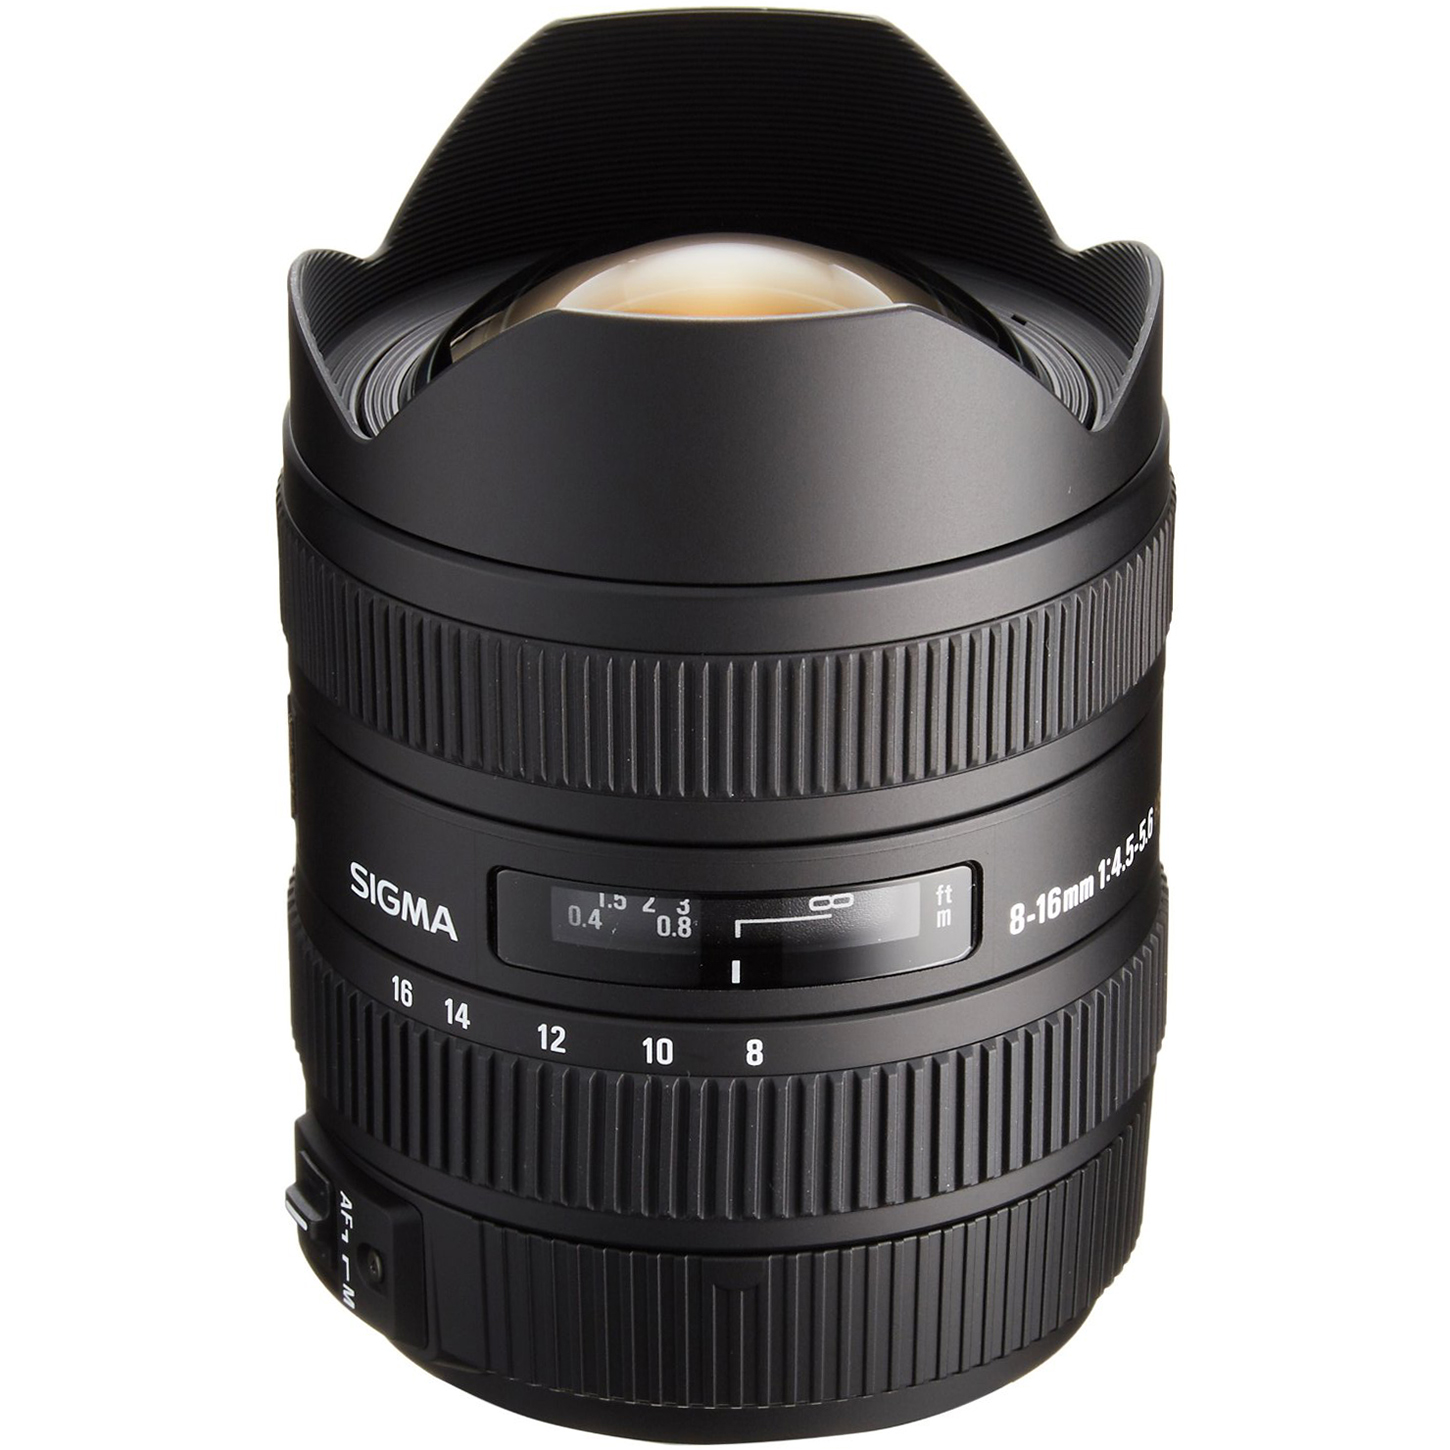 Sigma 8-16mm f/4.5-5.6 DC HSM Ultra-Wide Zoom Lens (for Nikon Cameras)